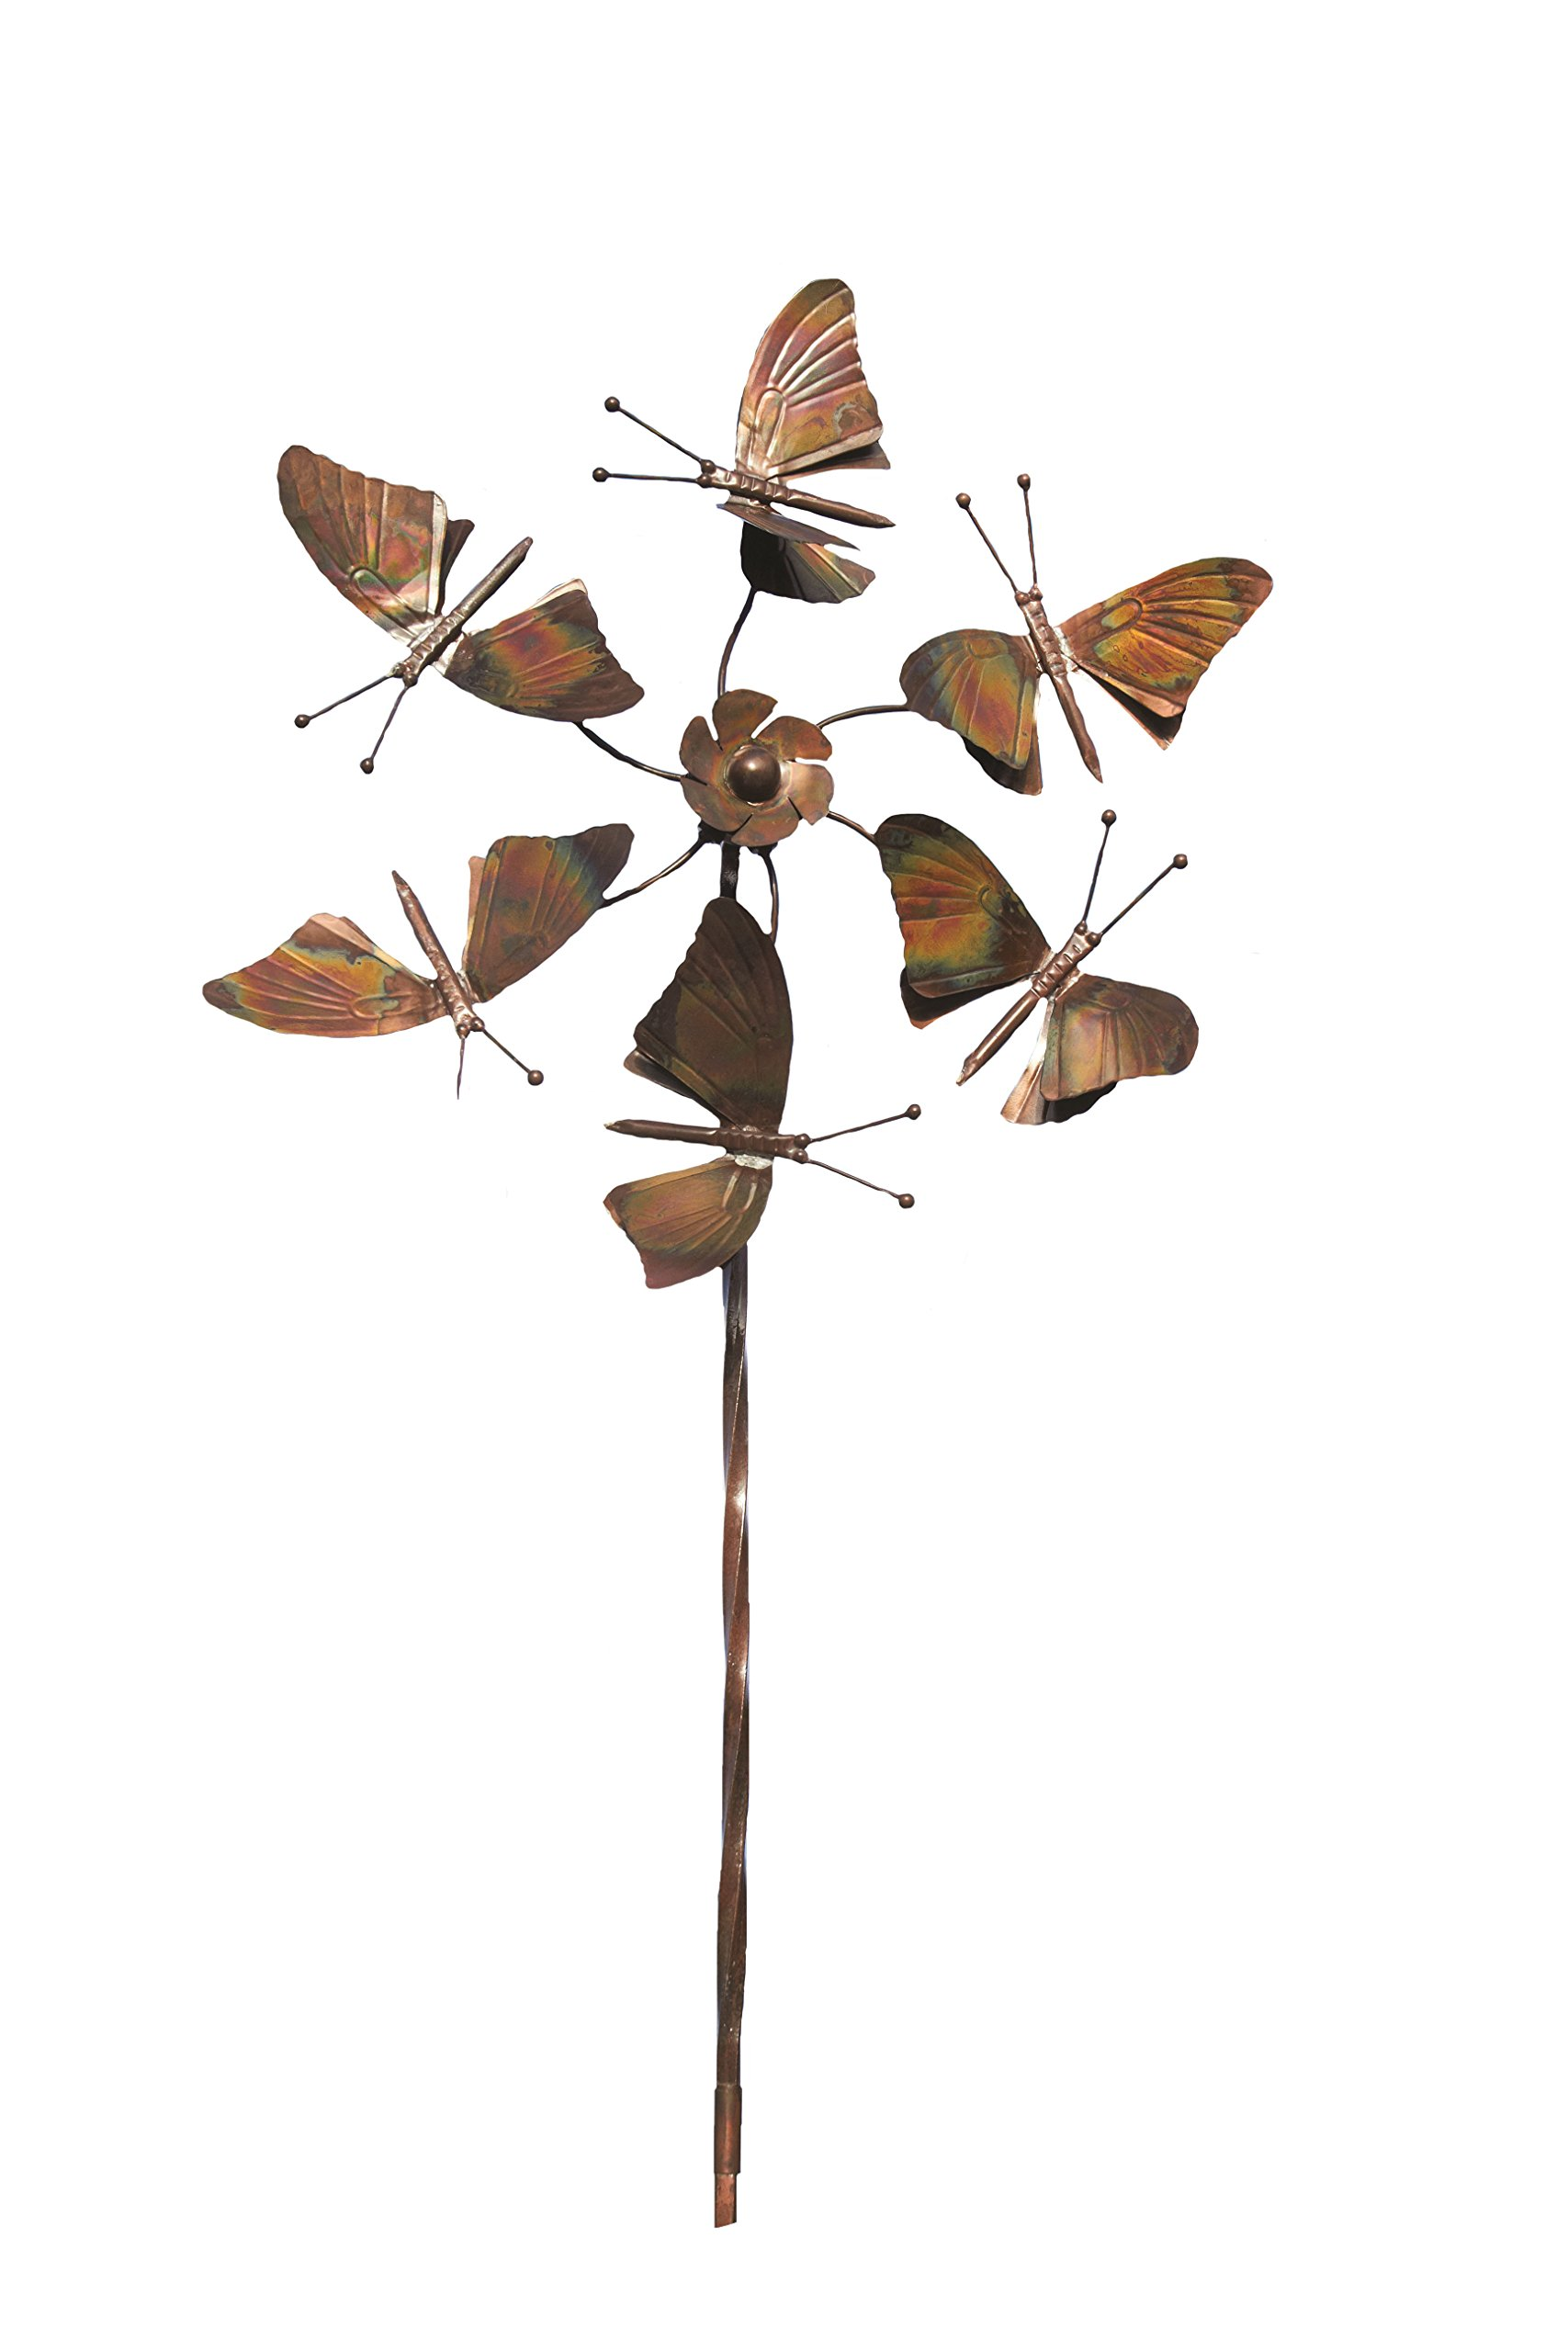 Ancient Graffiti Flamed Butterflies Fluttering Spinner Stake, 22 by 66-Inch